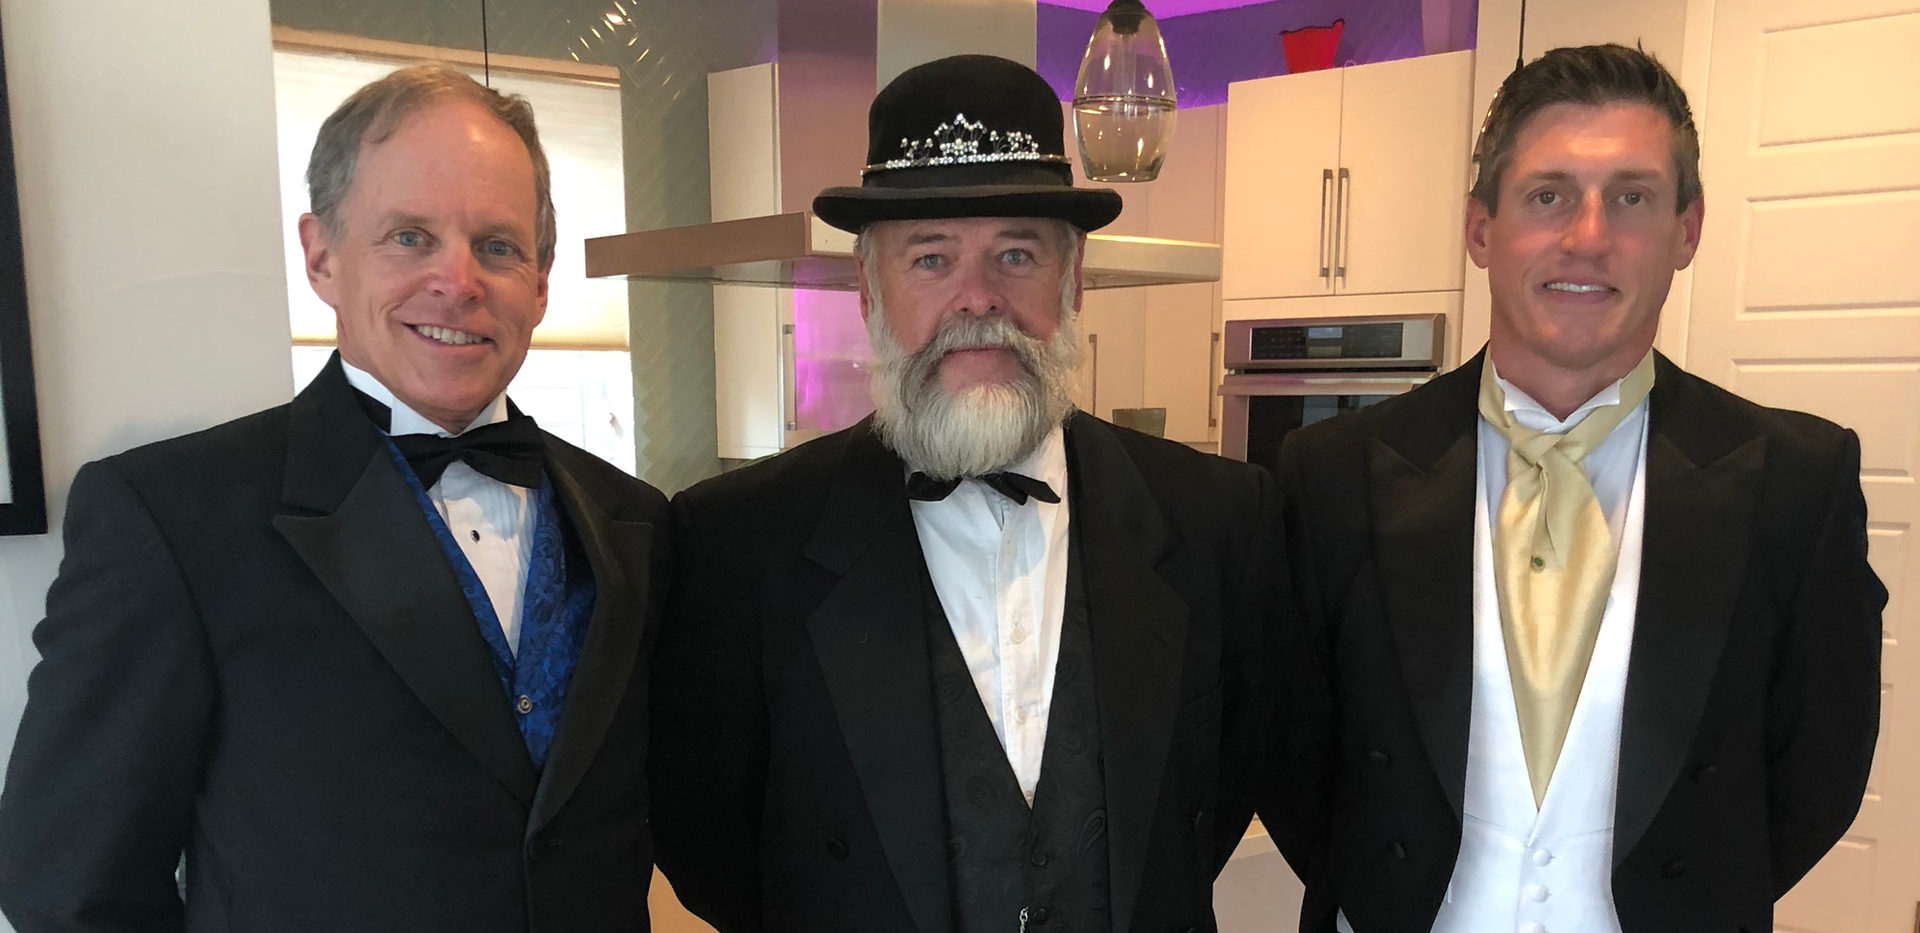 Royal Wedding Tea - 2018 - Duffy Boyle, Daniel Michael and John Gustafson